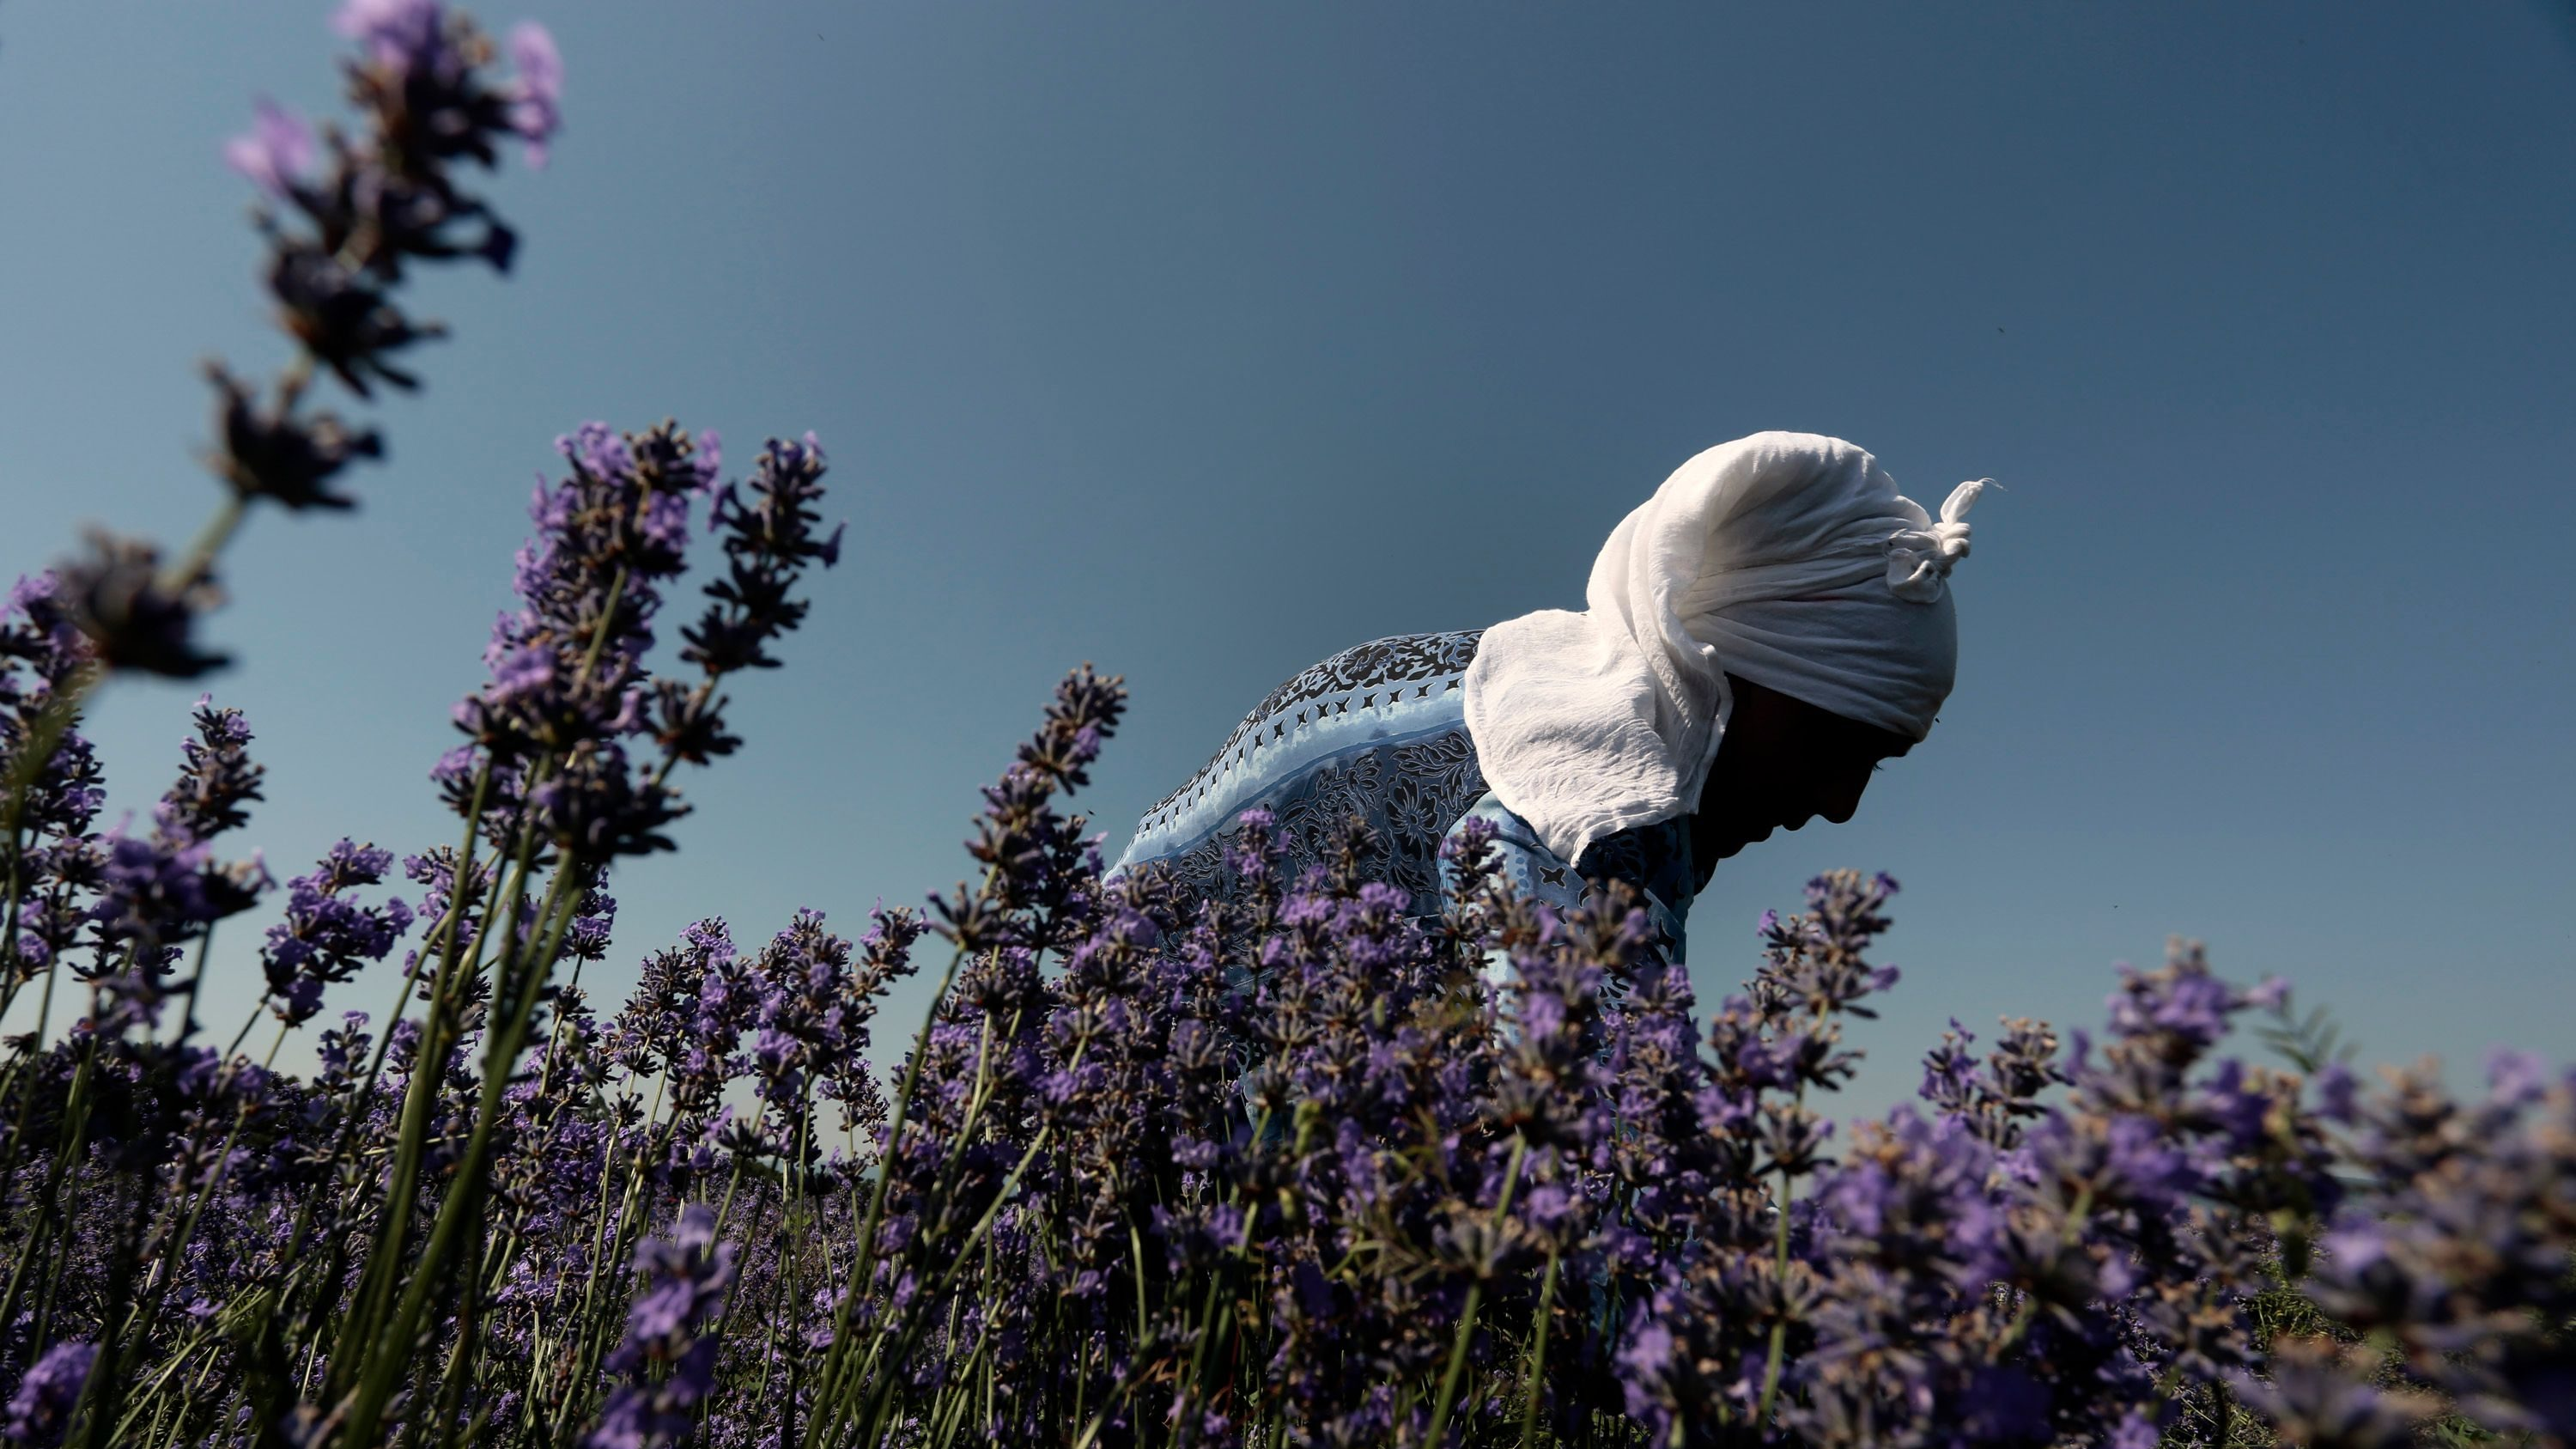 """In this July 6, 2014 photo, a worker reaps lavender flowers during harvest season near village of Tarnichane in Bulgaria's """"Rose valley"""", some 200 km (125 miles) east of the capital Sofia. In recent years Bulgarian production of lavender oil has increased meaning the country is now the largest producer in the world - even ahead of France. (AP Photo/Valentina Petrova)"""